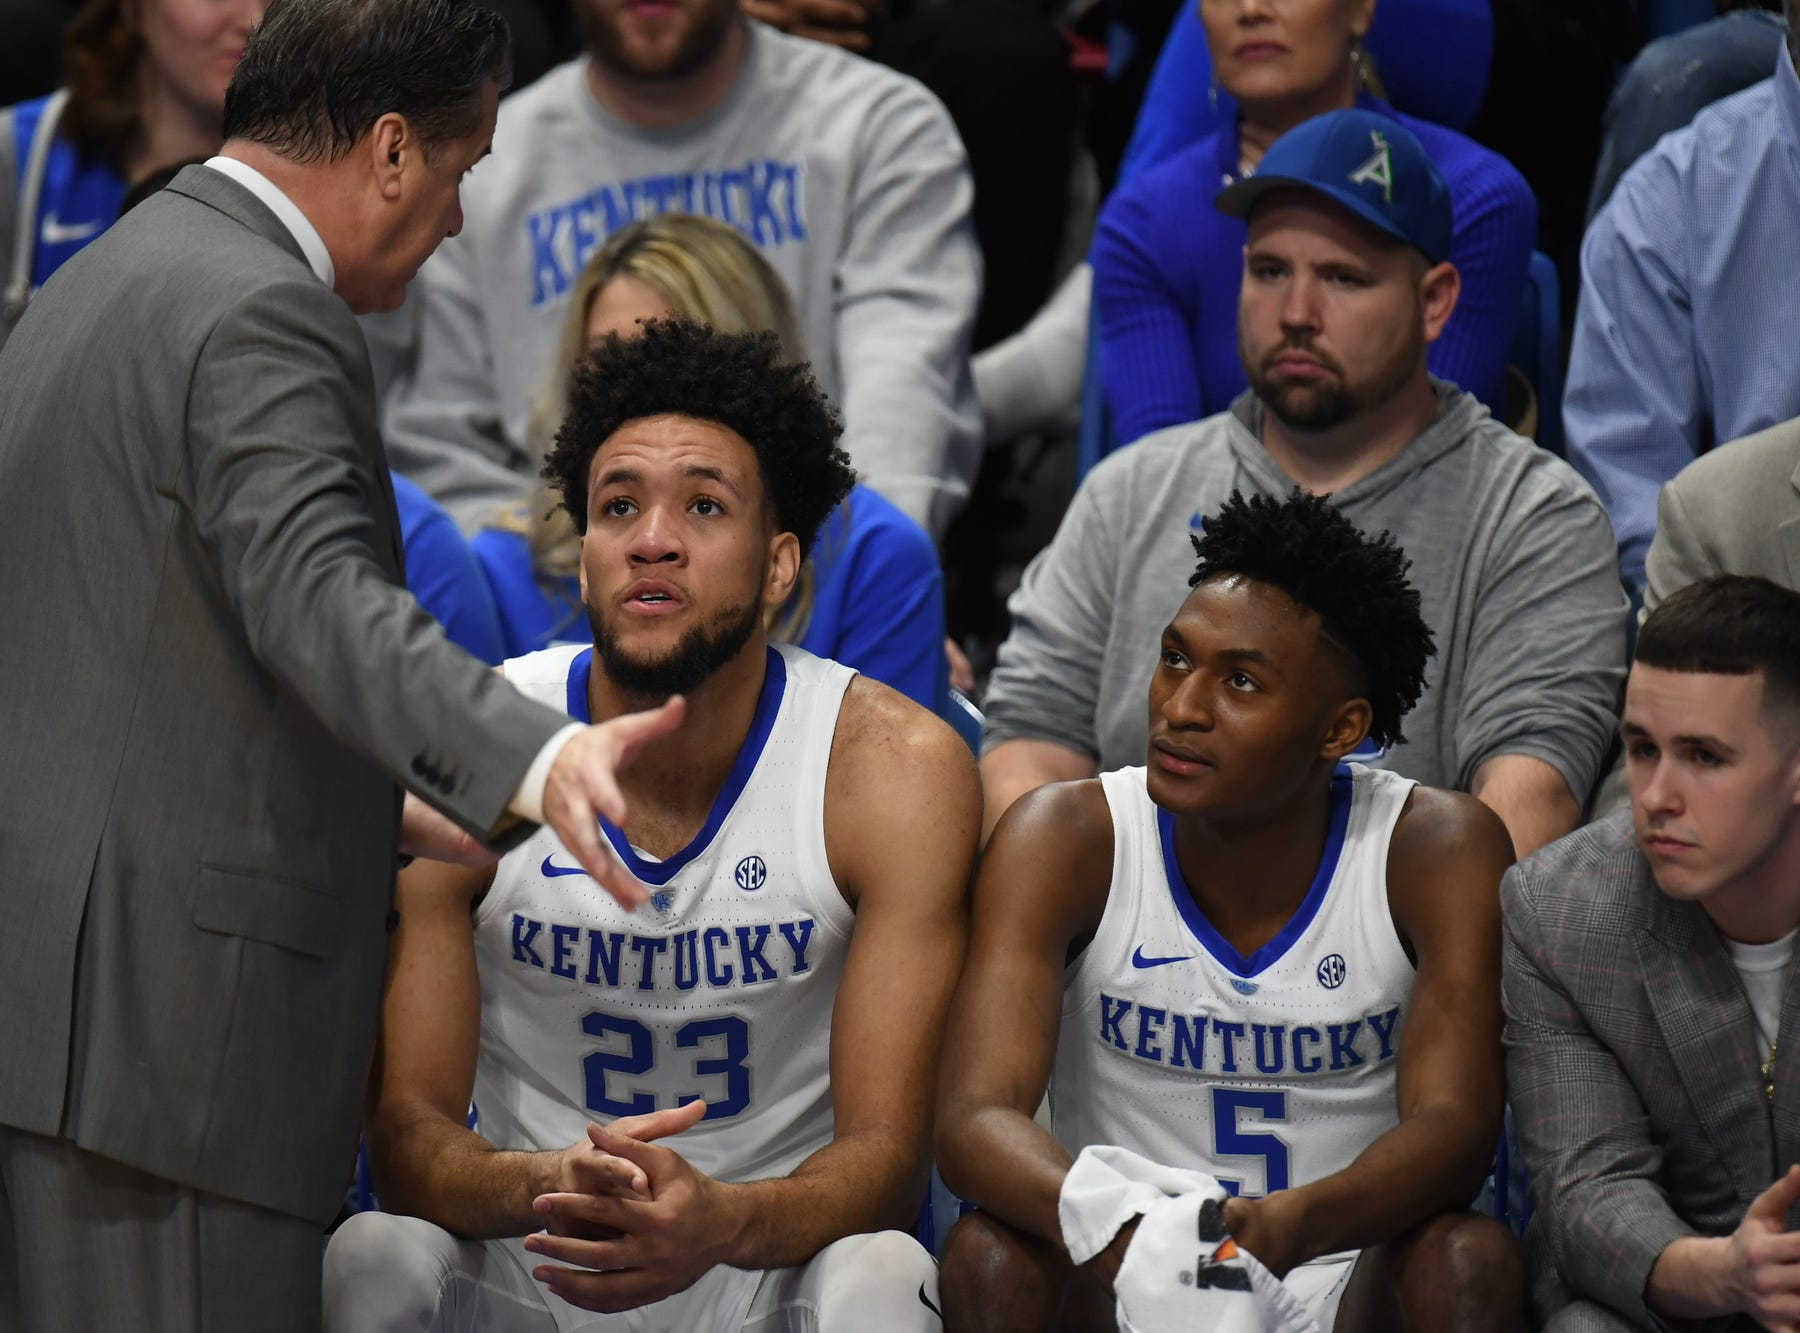 UK head coach John Calipari talks with F EJ Montgomery and G Immanuel Quickley during the University of Kentucky mens basketball game against Tennessee at Rupp Arena in Lexington, Kentucky on Saturday, February 16, 2019.